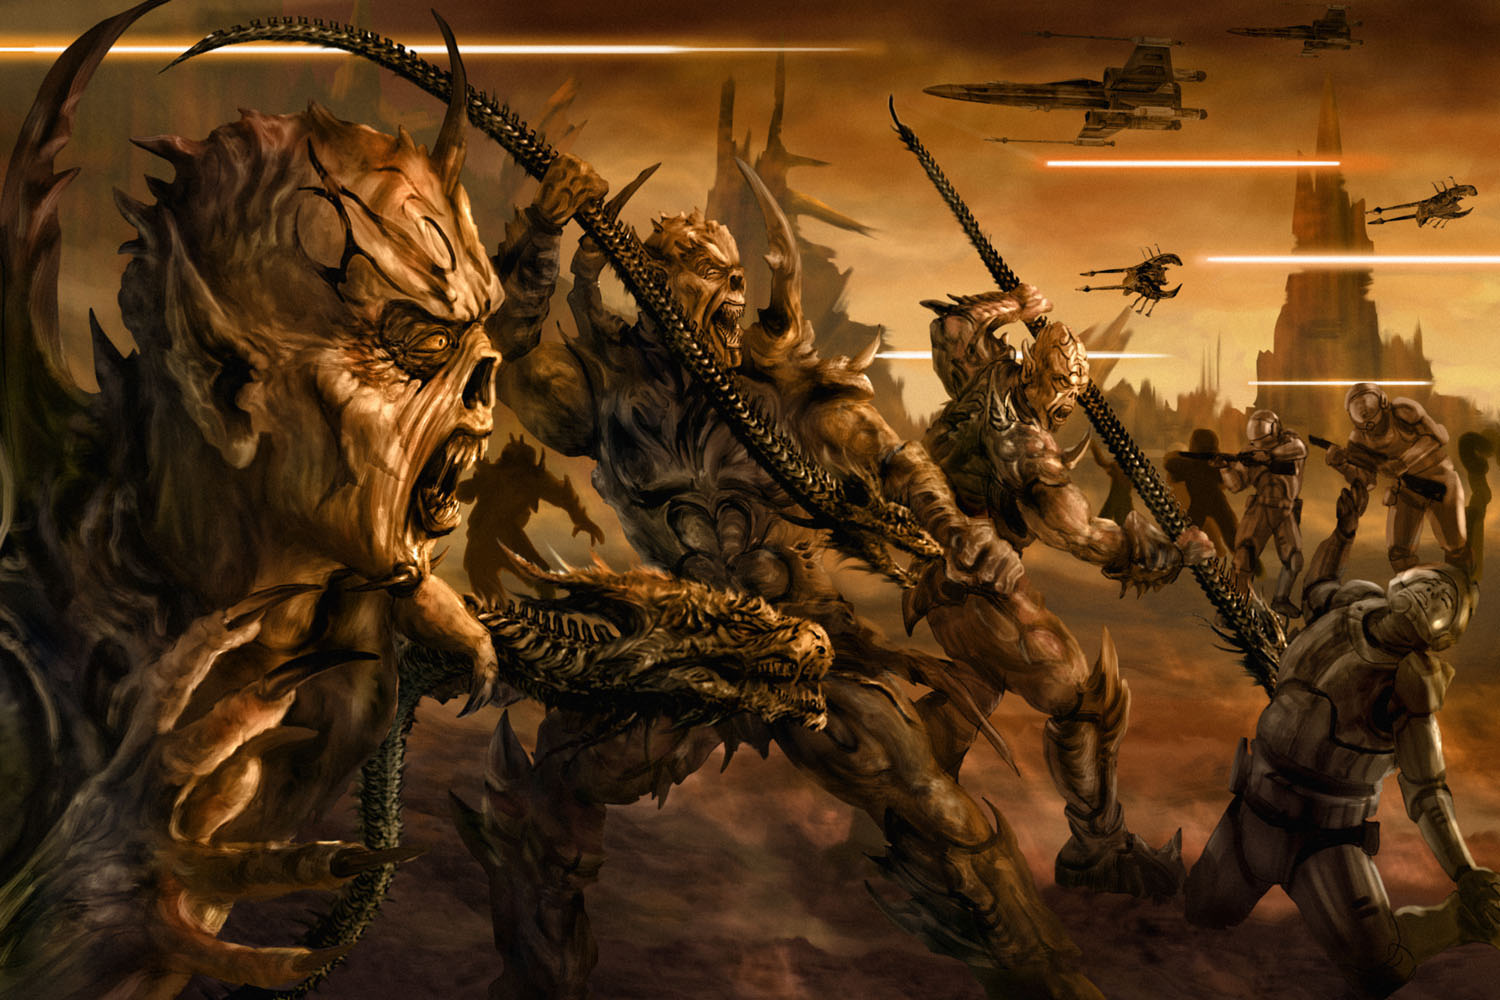 Yuuzhan_Vong_by_Chris_Scalf.jpg